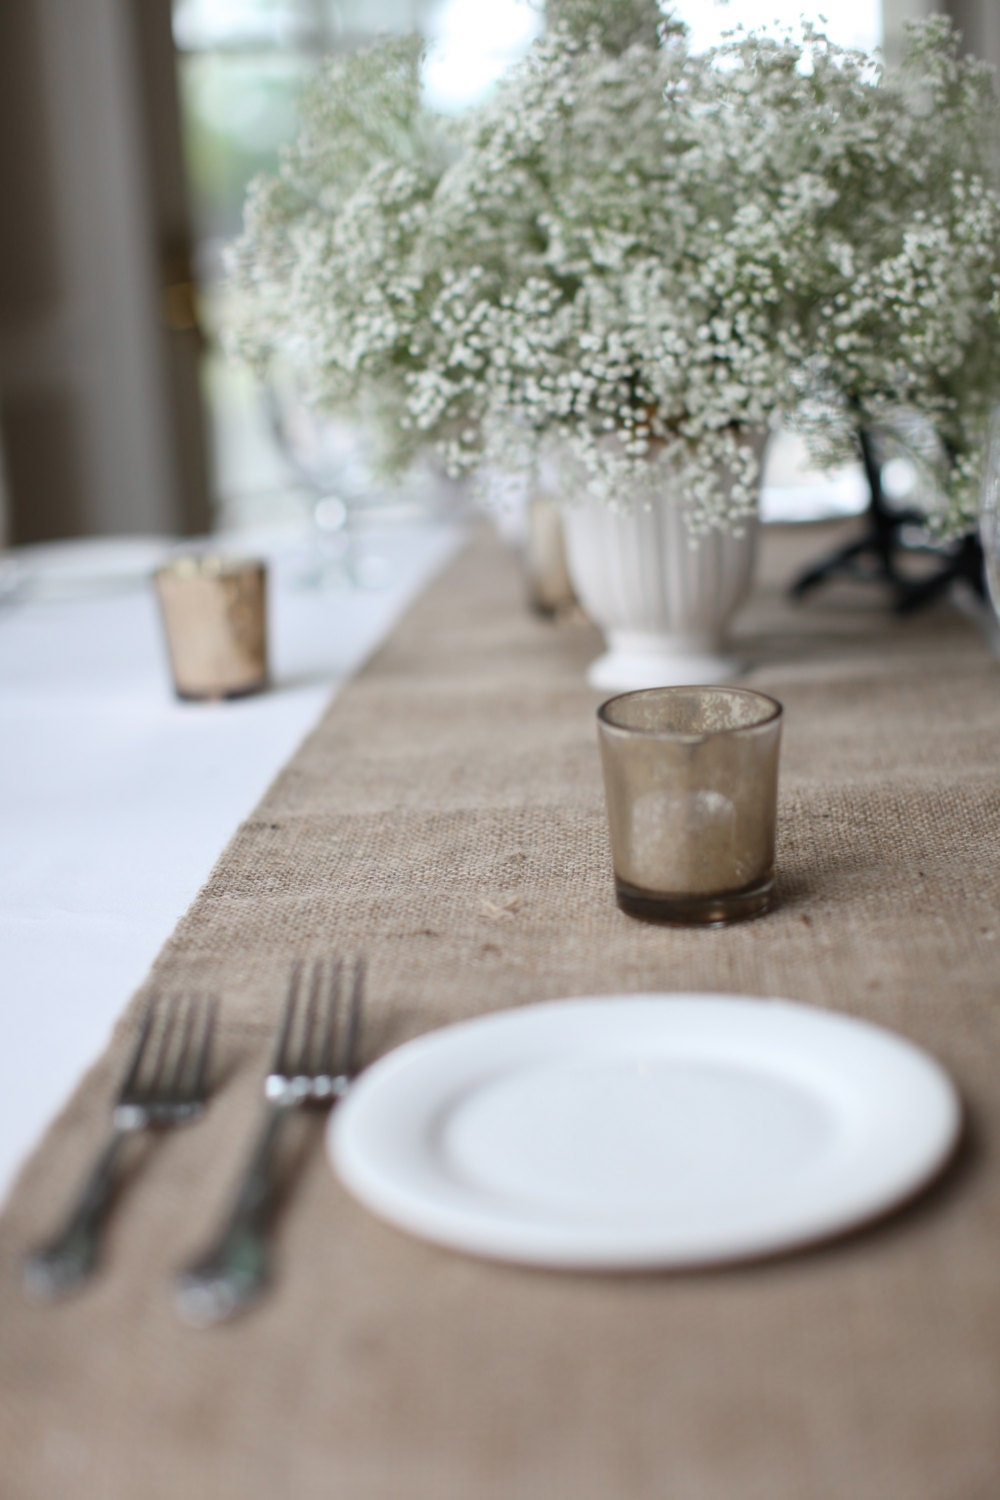 12 Foot Long Hemmed Burlap Table Runner in 14 16